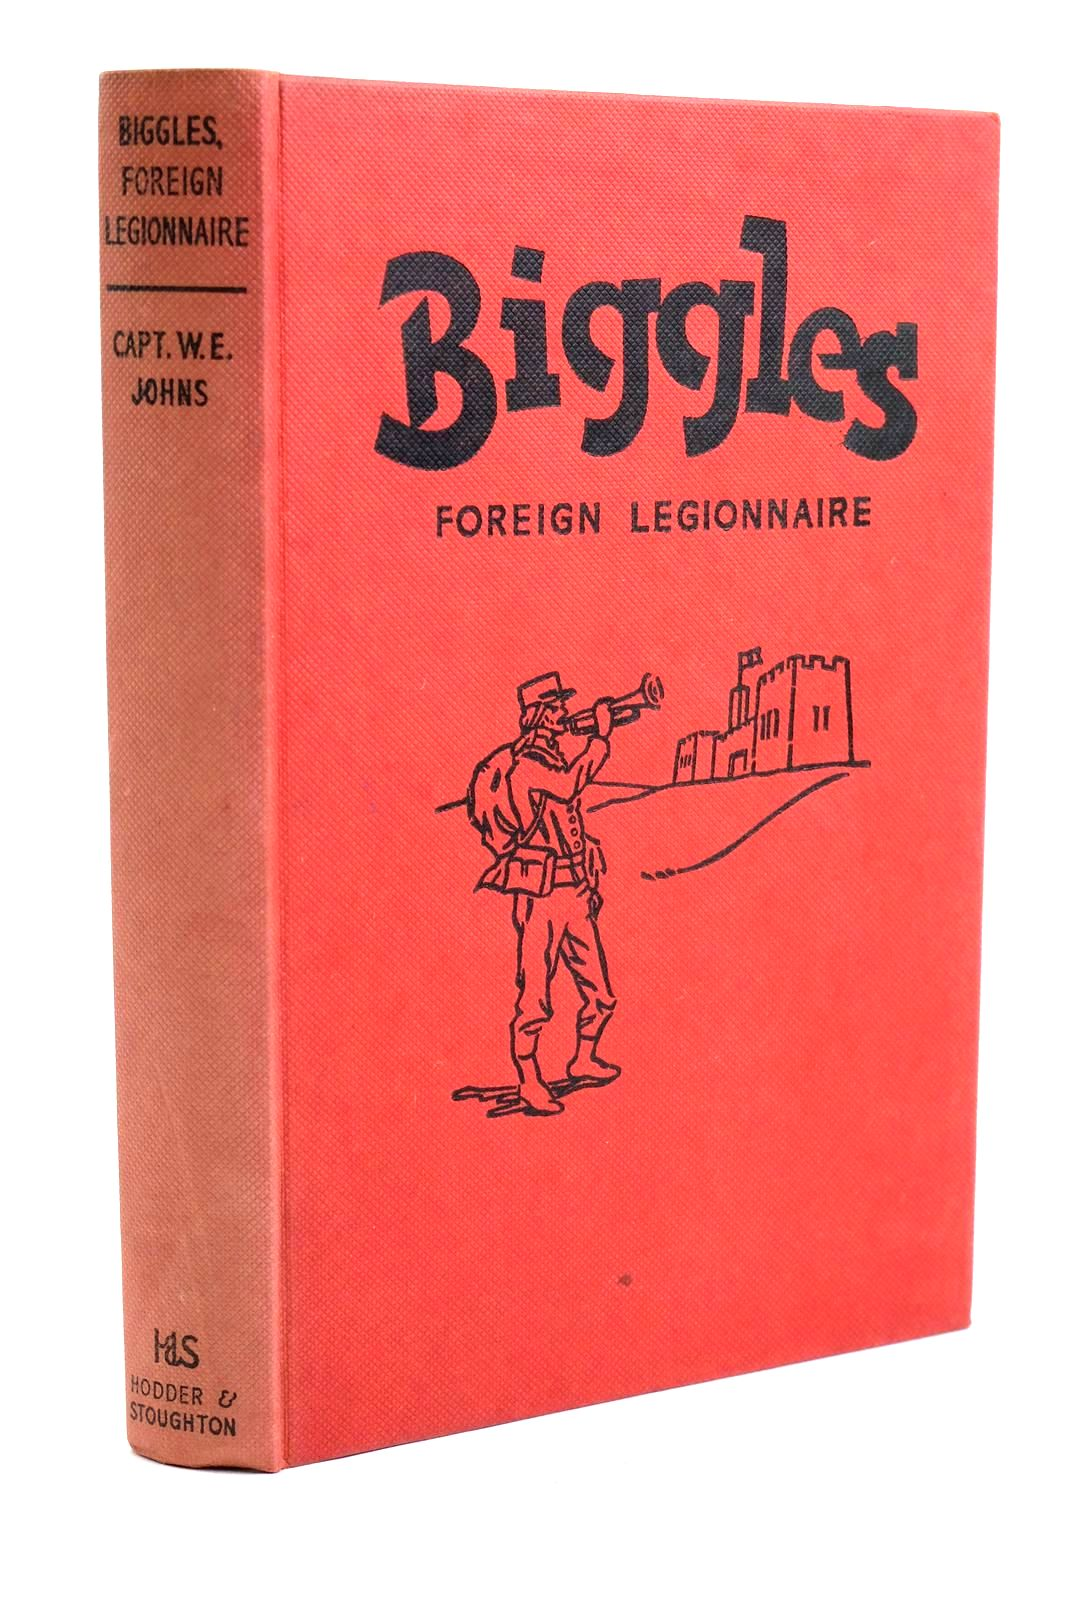 Photo of BIGGLES FOREIGN LEGIONNAIRE written by Johns, W.E. illustrated by Stead,  published by Hodder & Stoughton (STOCK CODE: 1320697)  for sale by Stella & Rose's Books